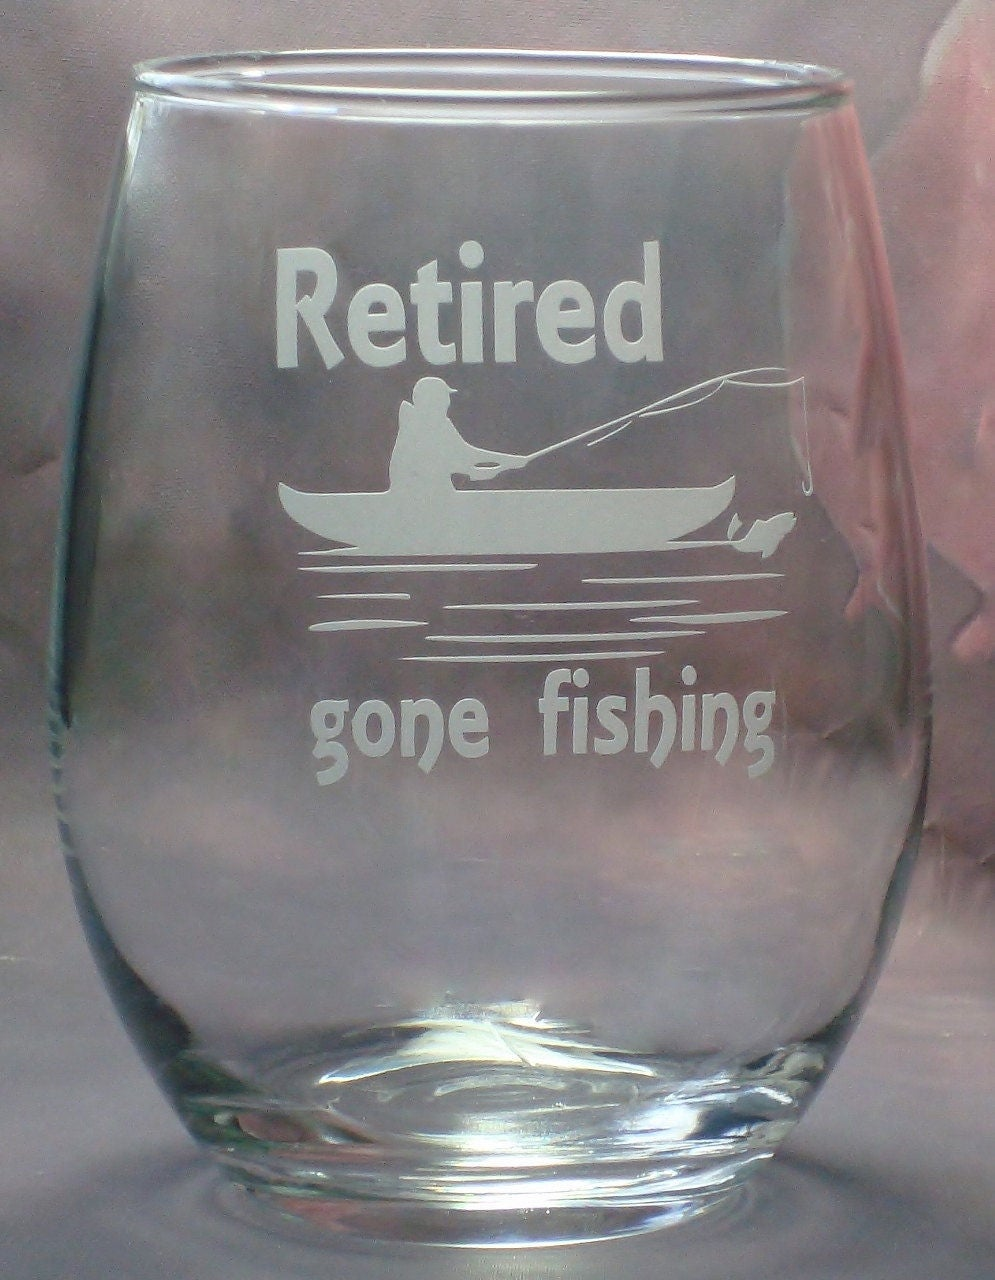 Retirement Gifts | Retired Gifts for Retirement Co Worker Gift Boat Gone Fishing | 21 oz. Stem Less Wine Glass | Fishing Retirement Gift